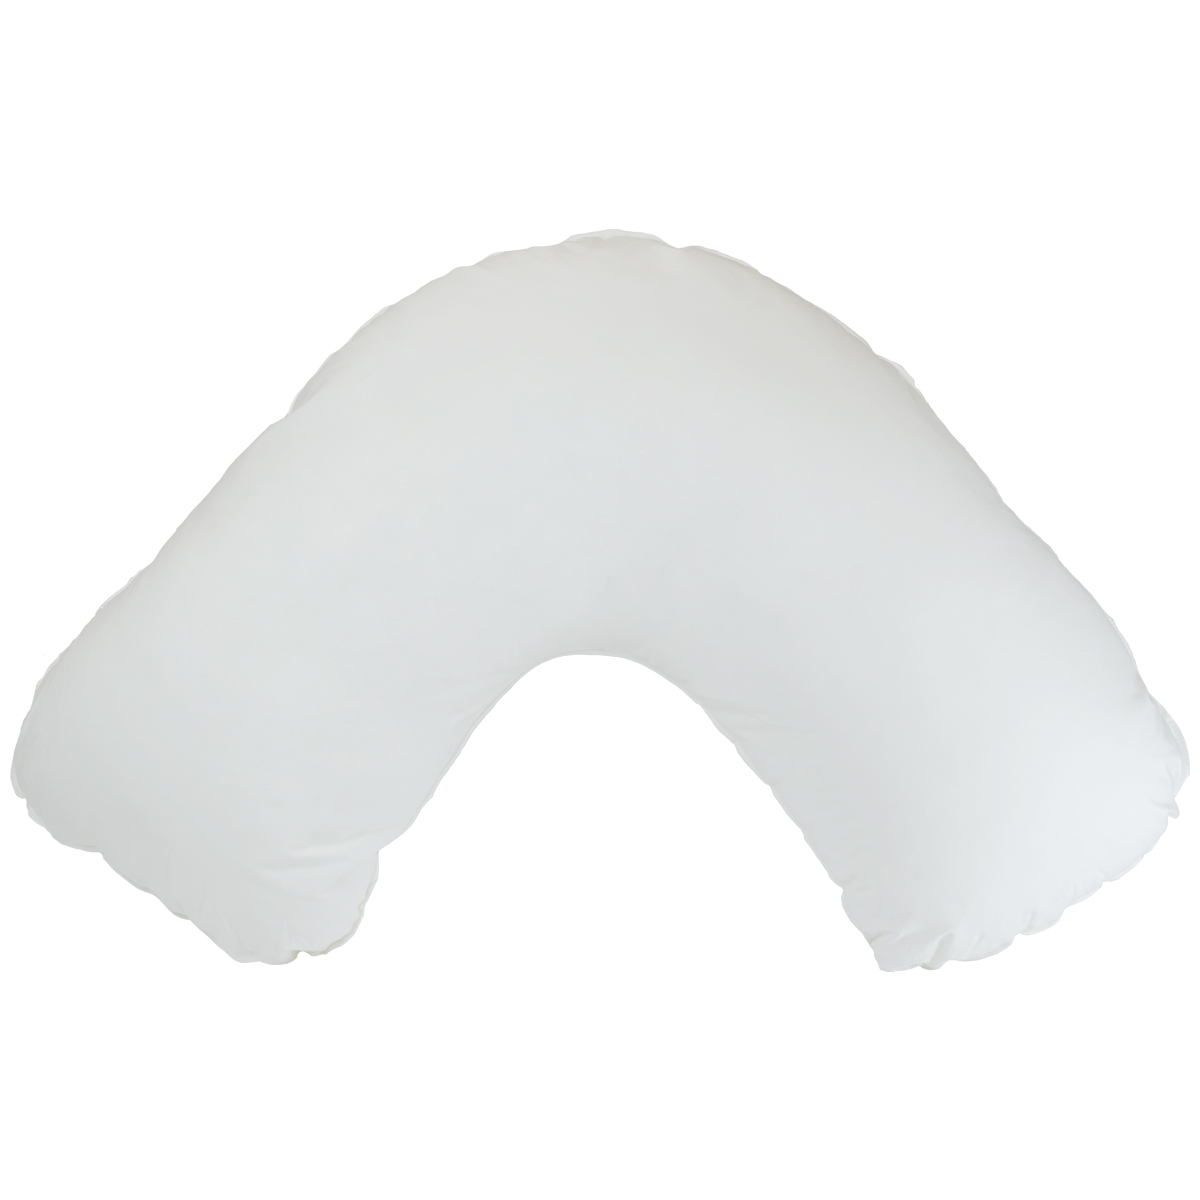 Easyrest Luxury V Shape Boomerang Pillow